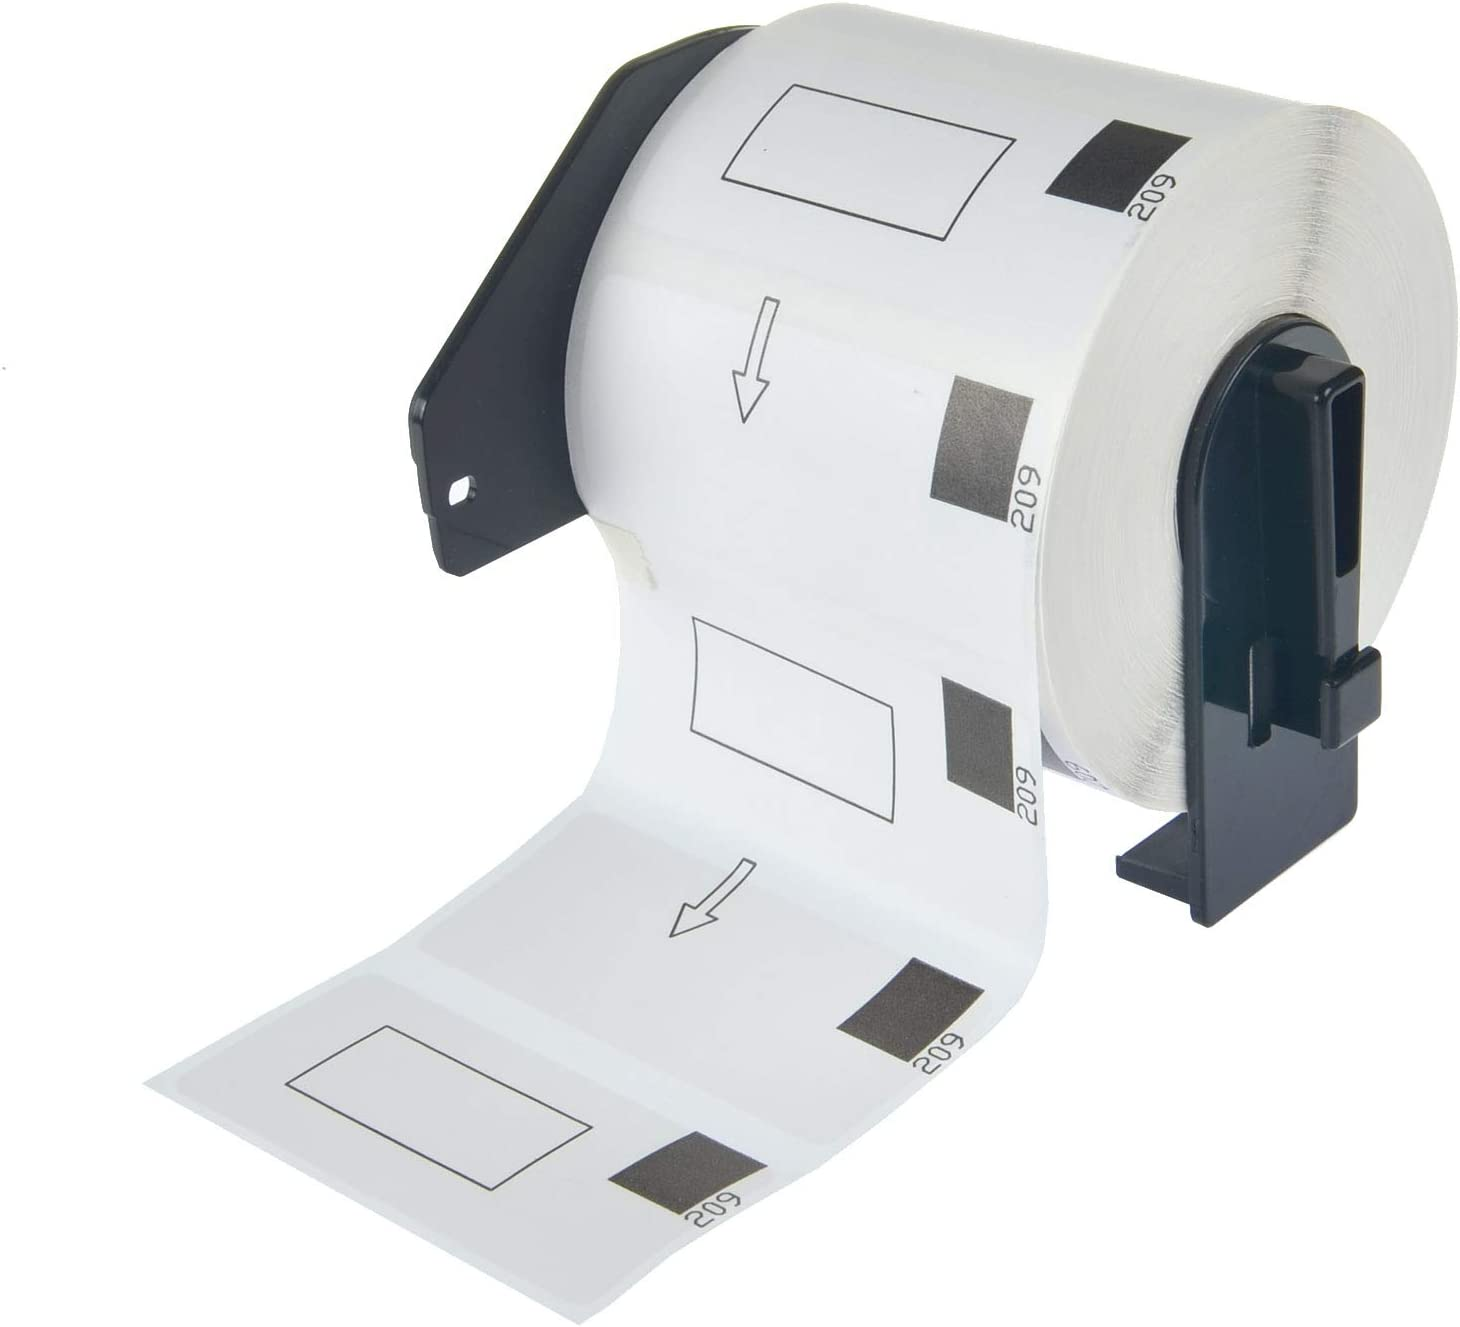 Die-Cut Length Paper Tape Labels with Cartridge for QL-500 QL-570 QL-720NW QL-1050 QL-1060N KCMYTONER 29mm x 62mm Compatible for Brother DK-1209 DK1209 1-1//7 x 2-3//7 8 Roll, 800 Labels per roll